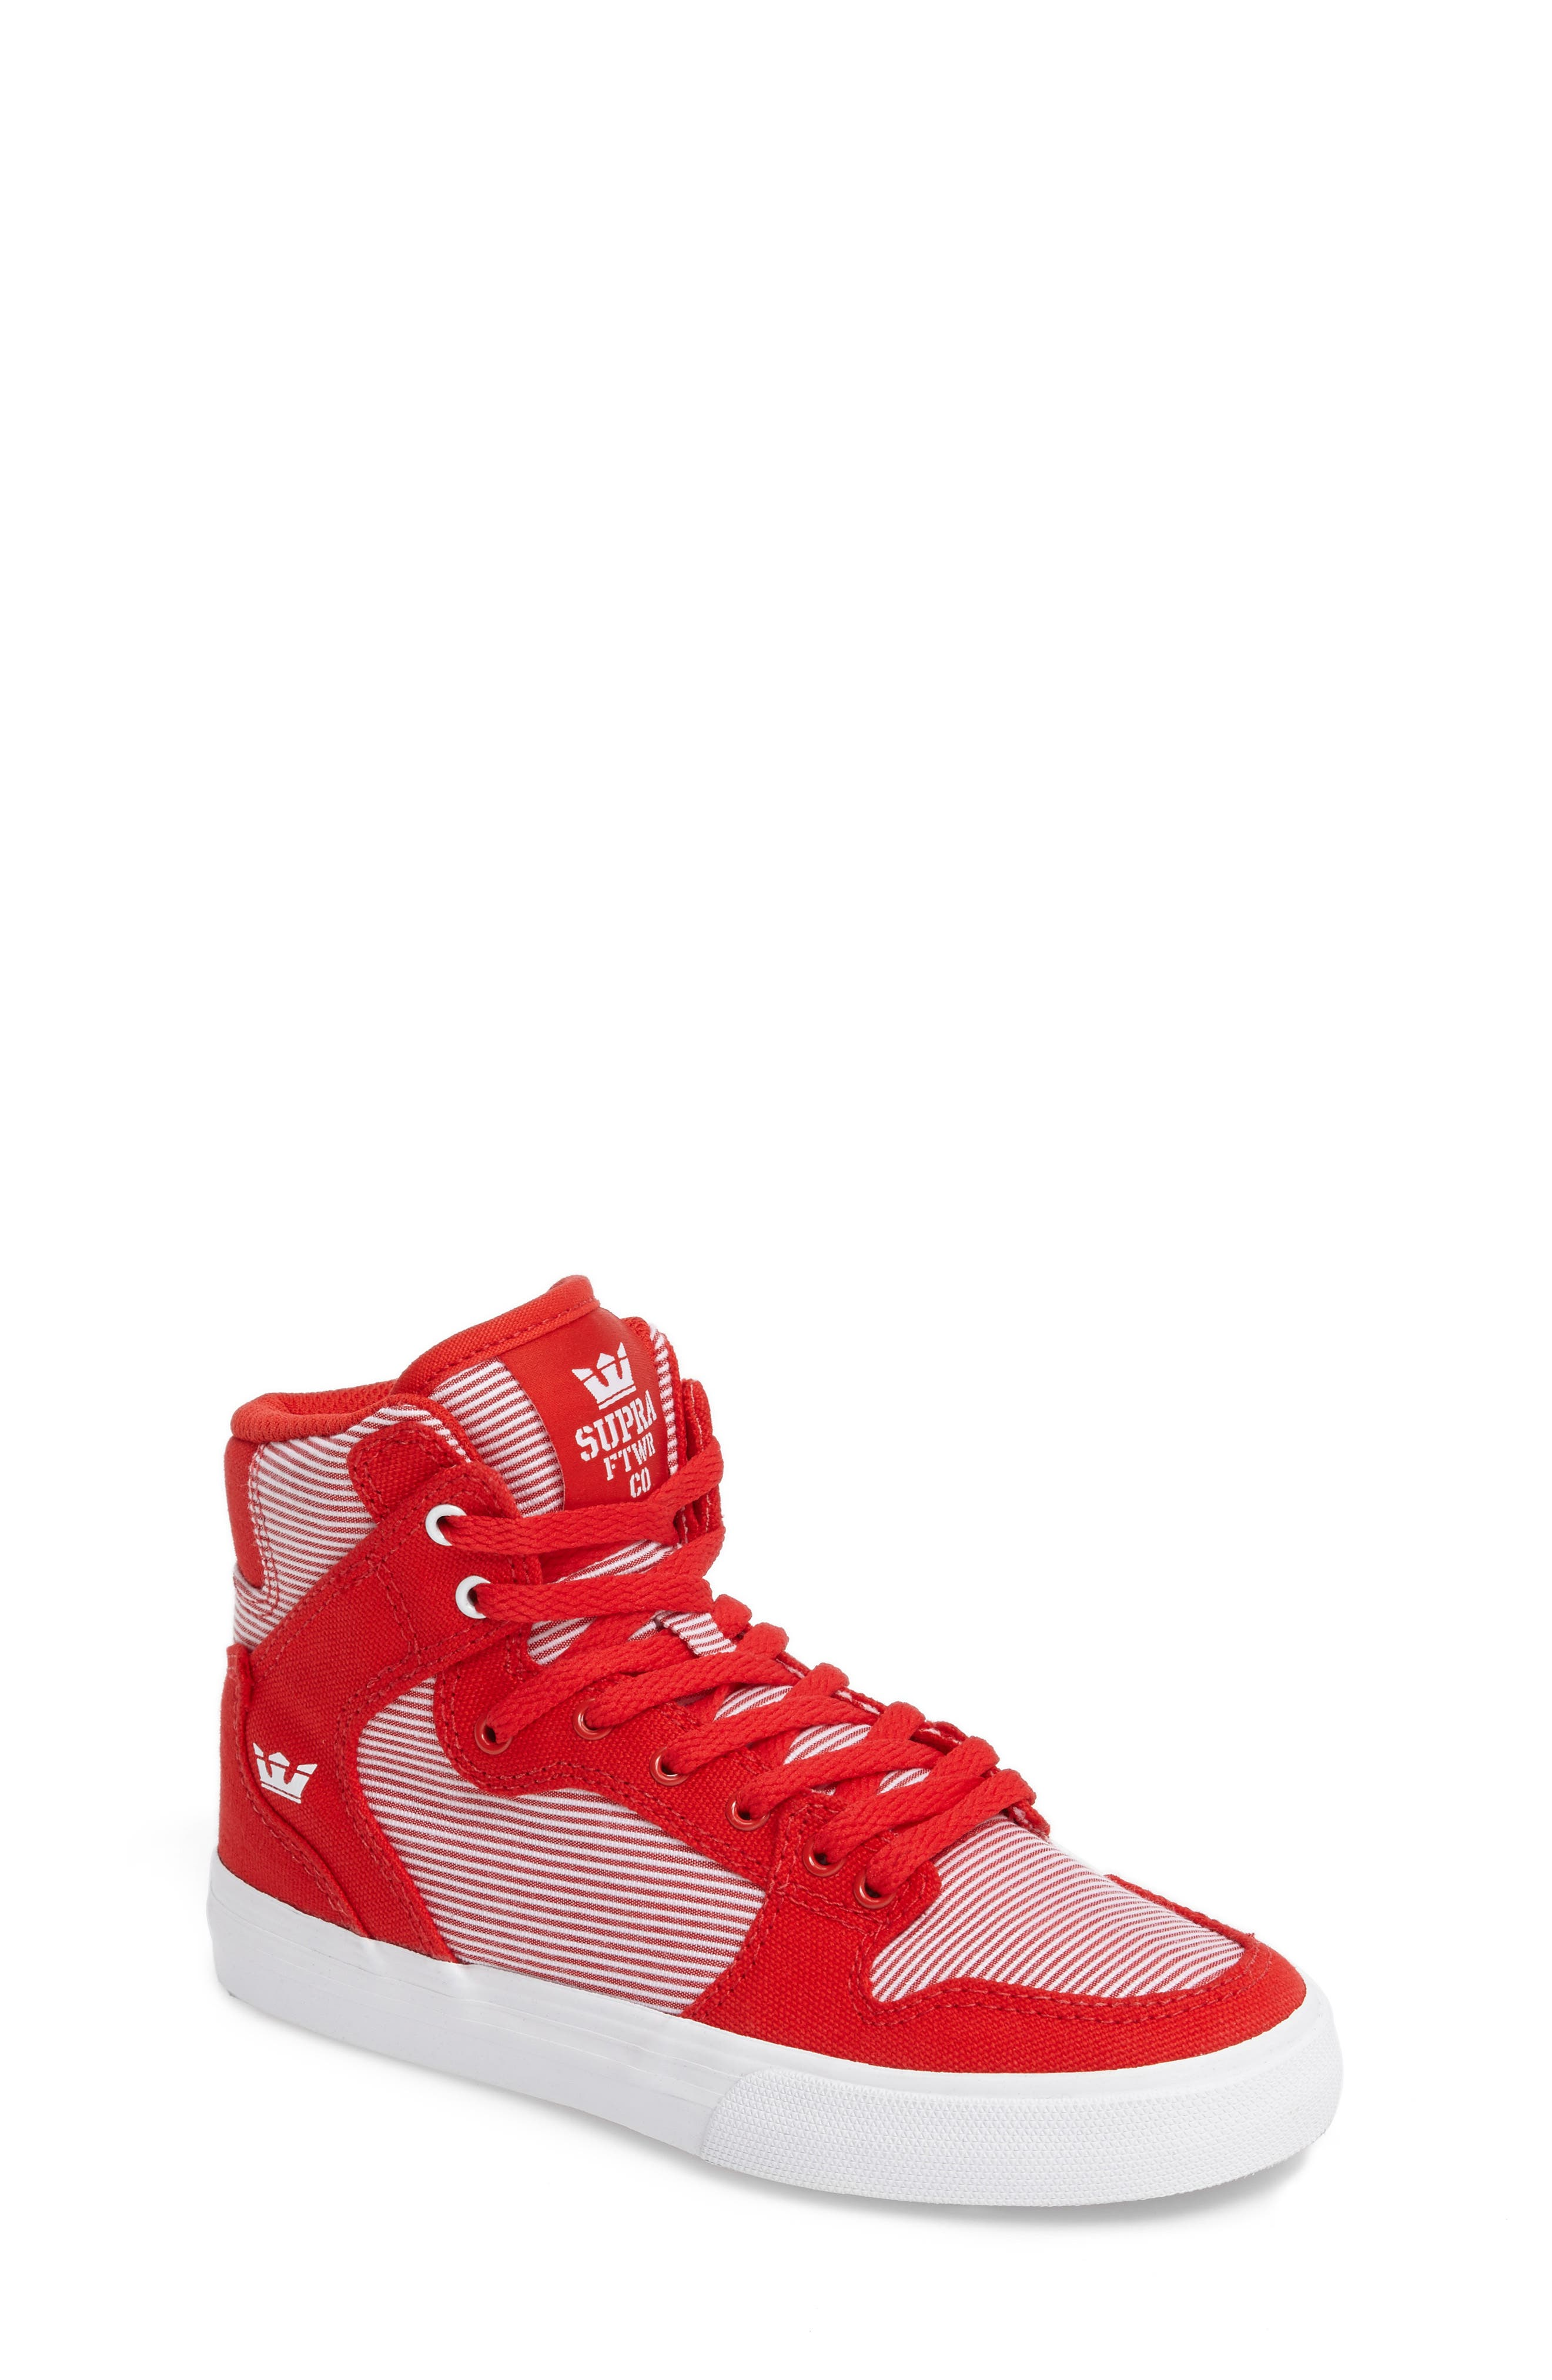 Vaider High Top Sneaker,                             Main thumbnail 1, color,                             Red/ White